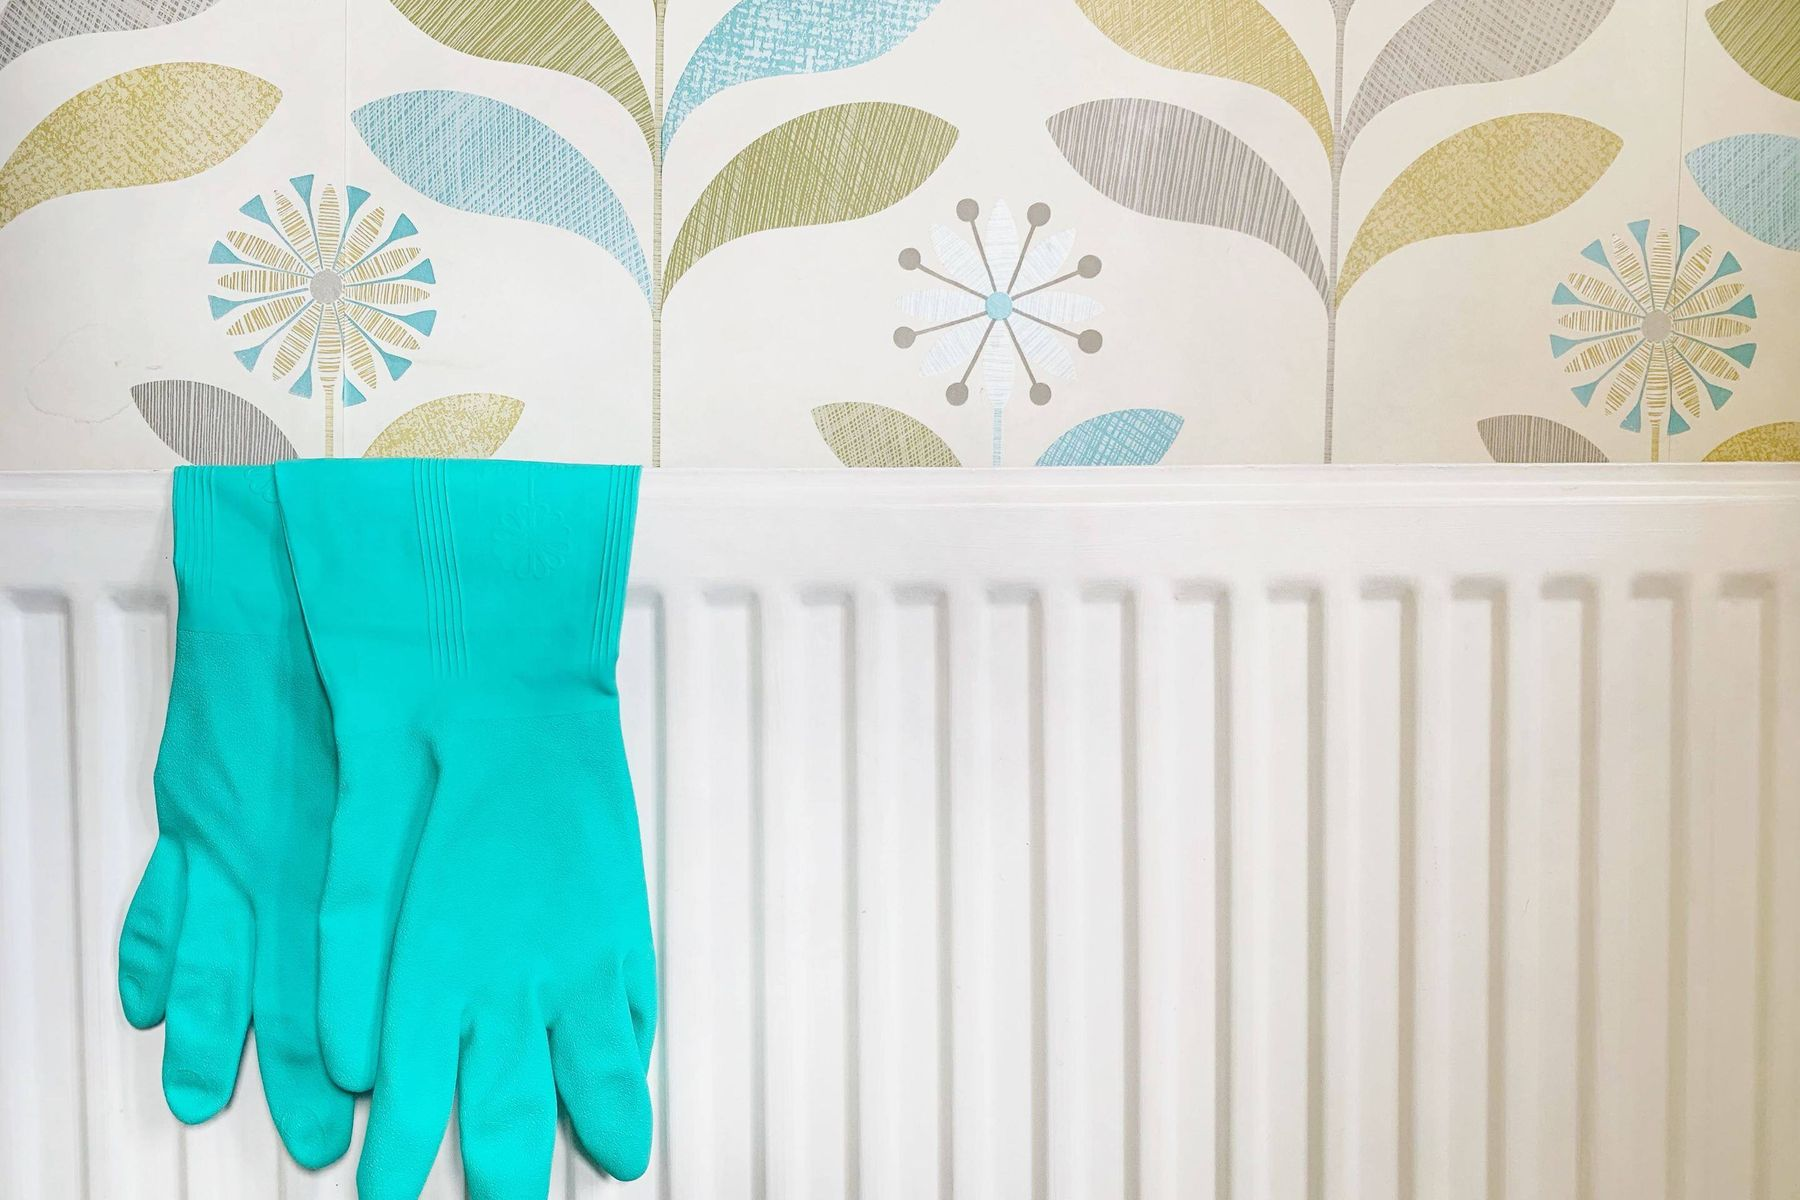 Gloves hanging on radiator in home